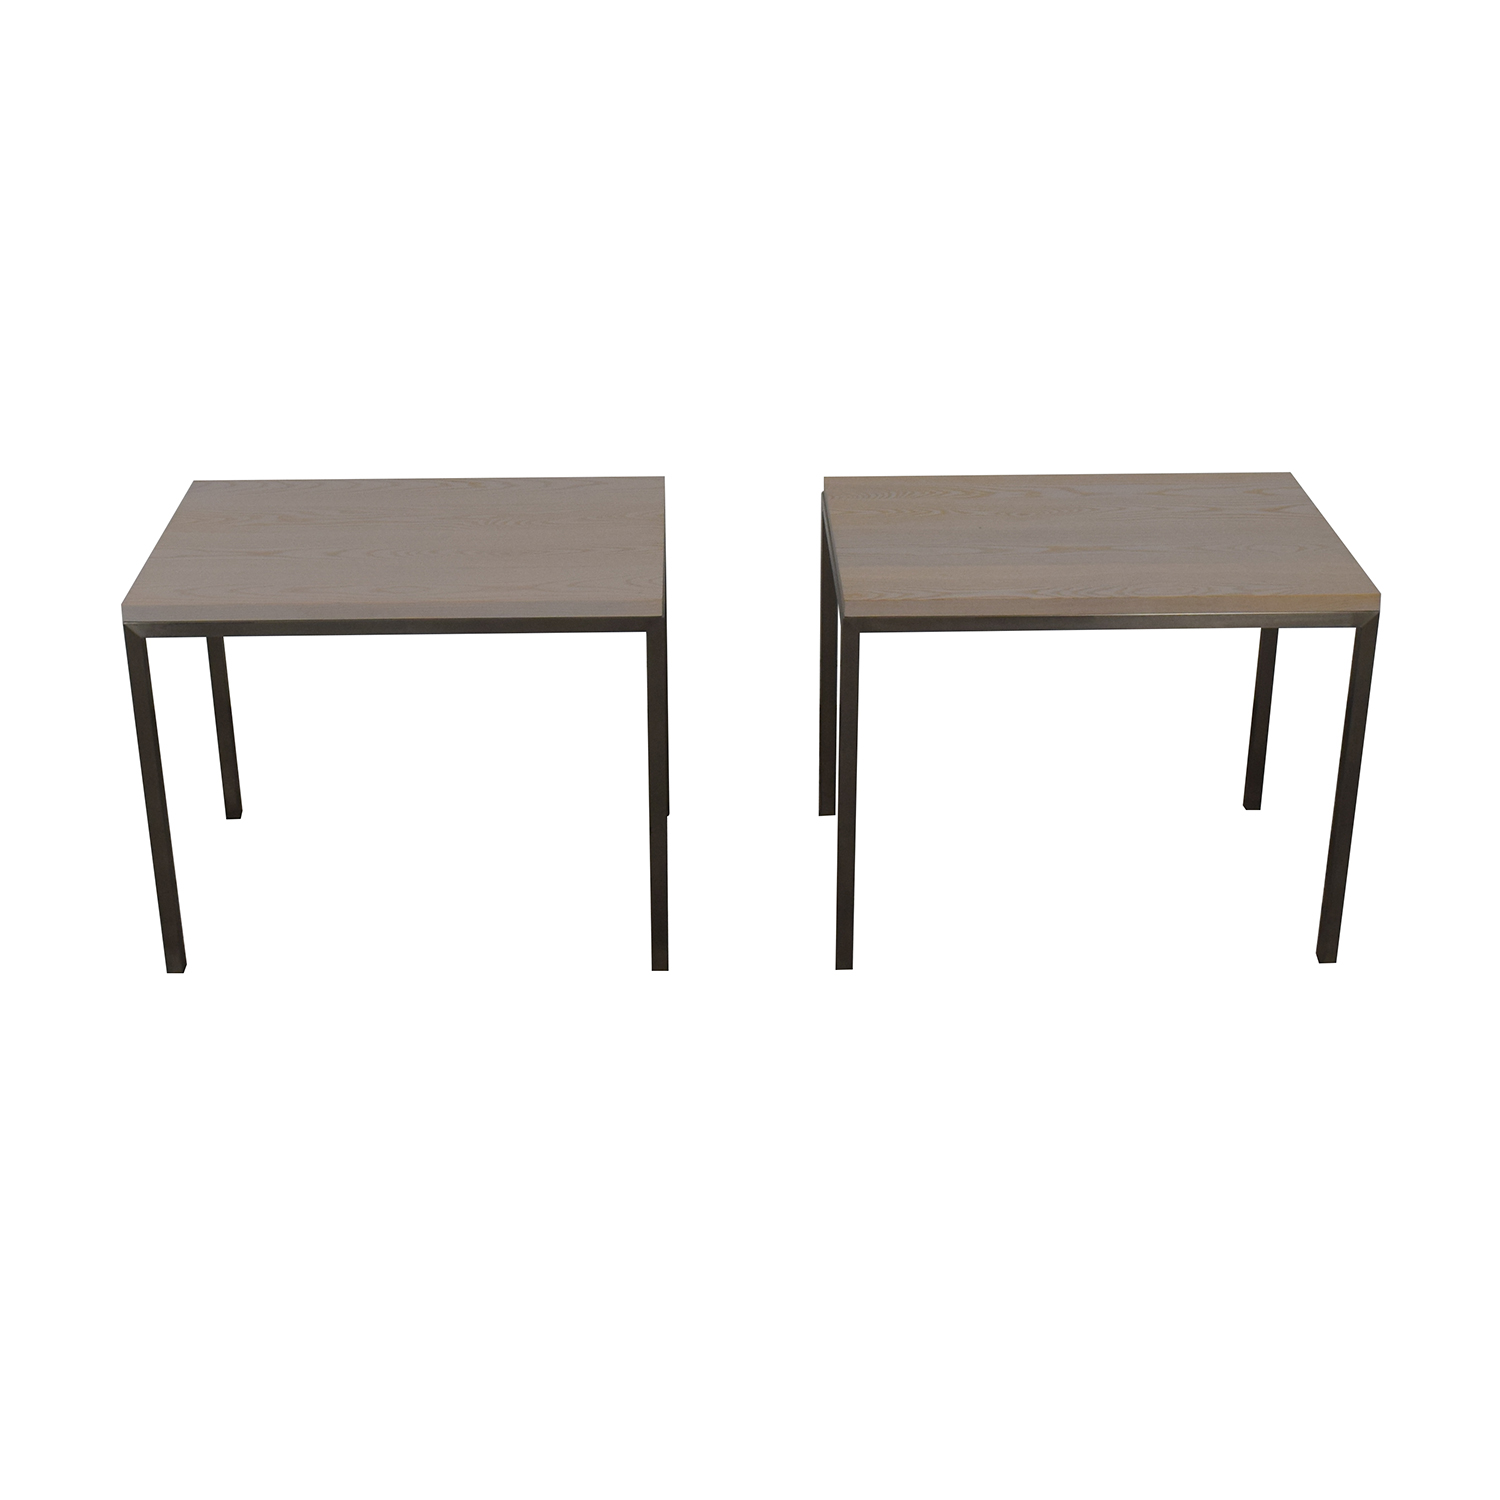 Room & Board Room & Board Portica End Tables discount